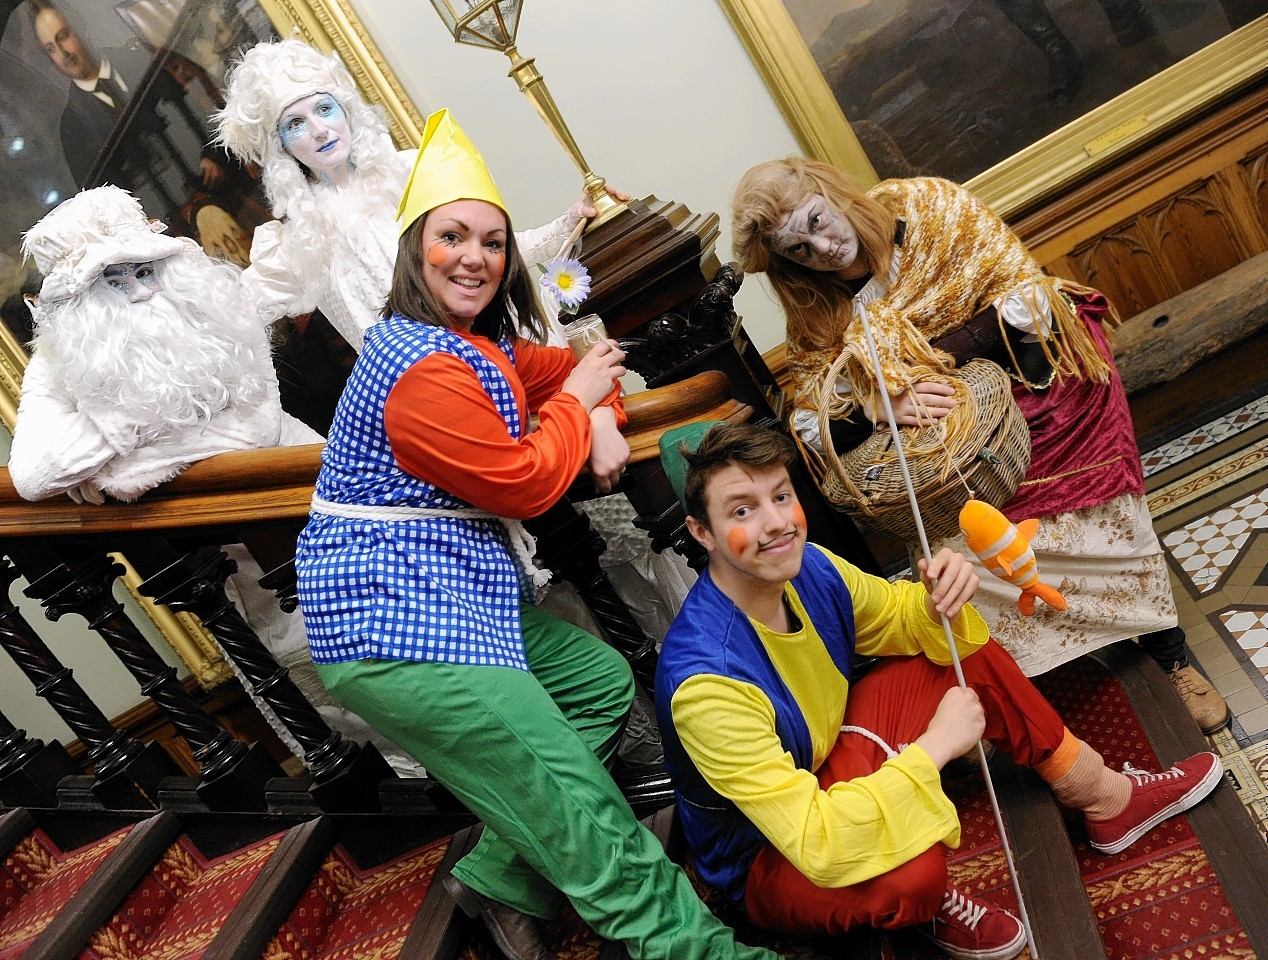 Some of the acts from last year's winter festival: Stilt walkers Connel Rollo-Jamieson and Aliza Graham